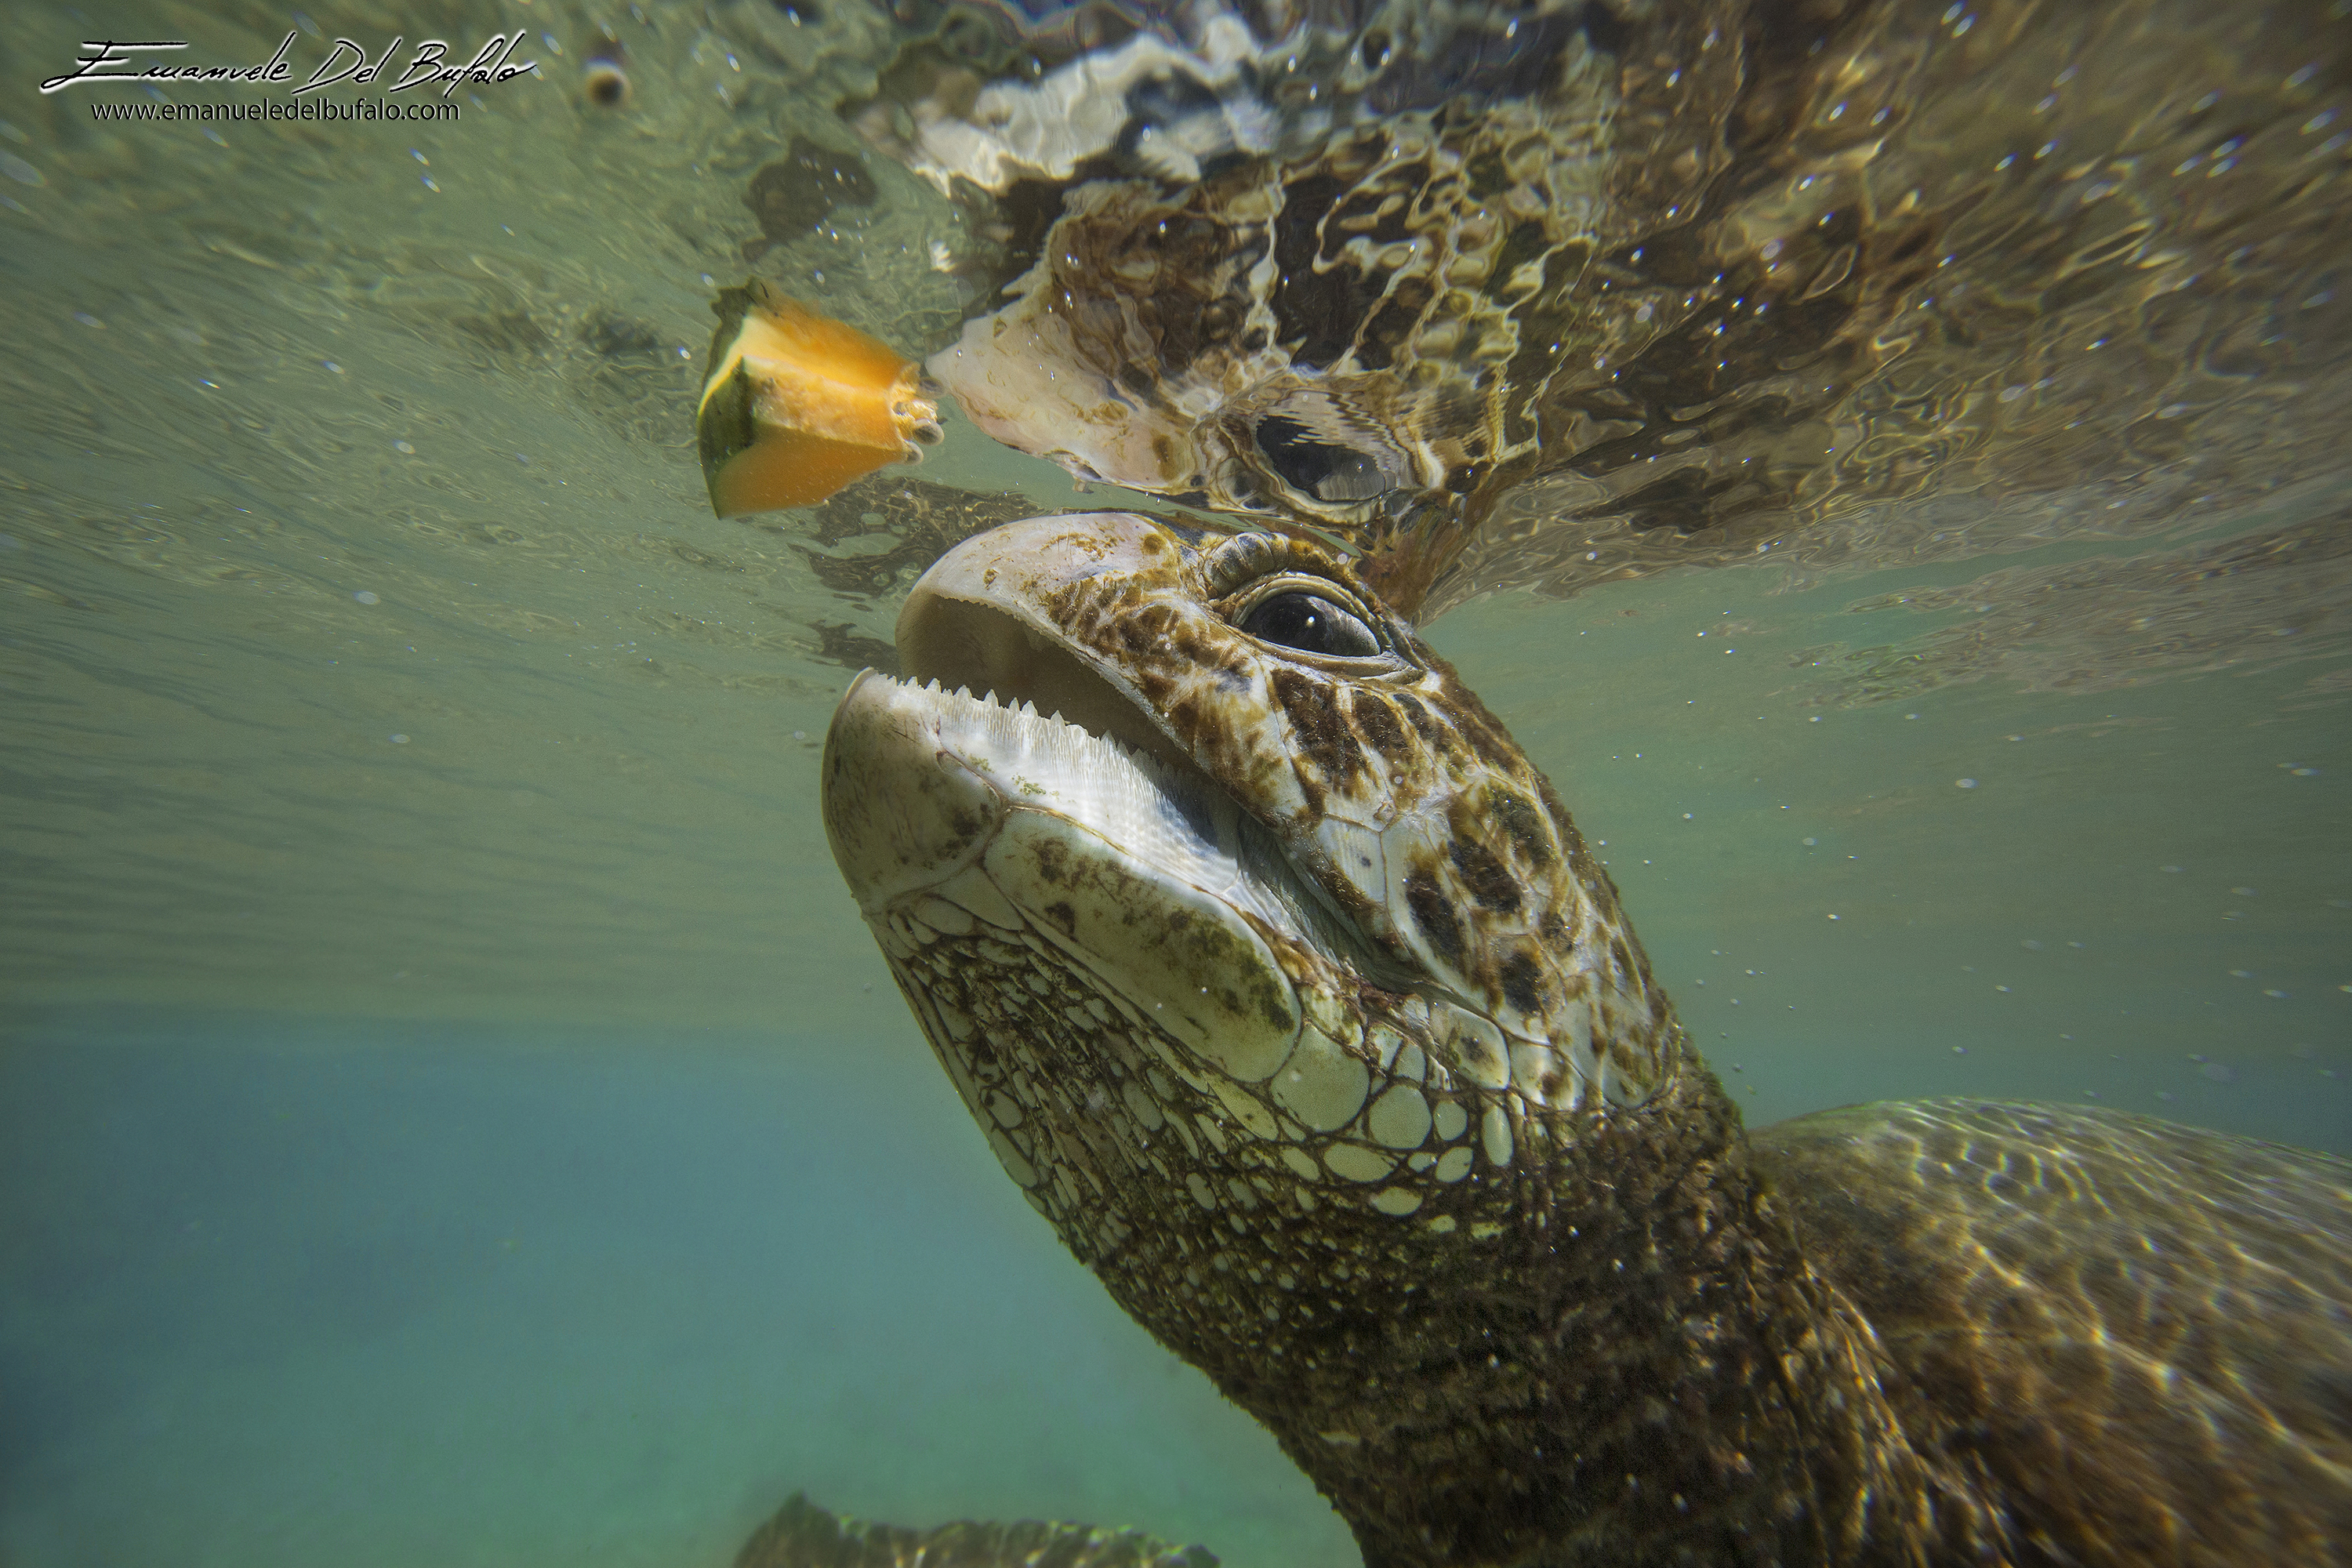 www.emanueledelbufalo.com #efate #turtle #papaya #animal #ocean #vanuatu #south_pacific #portrai #un